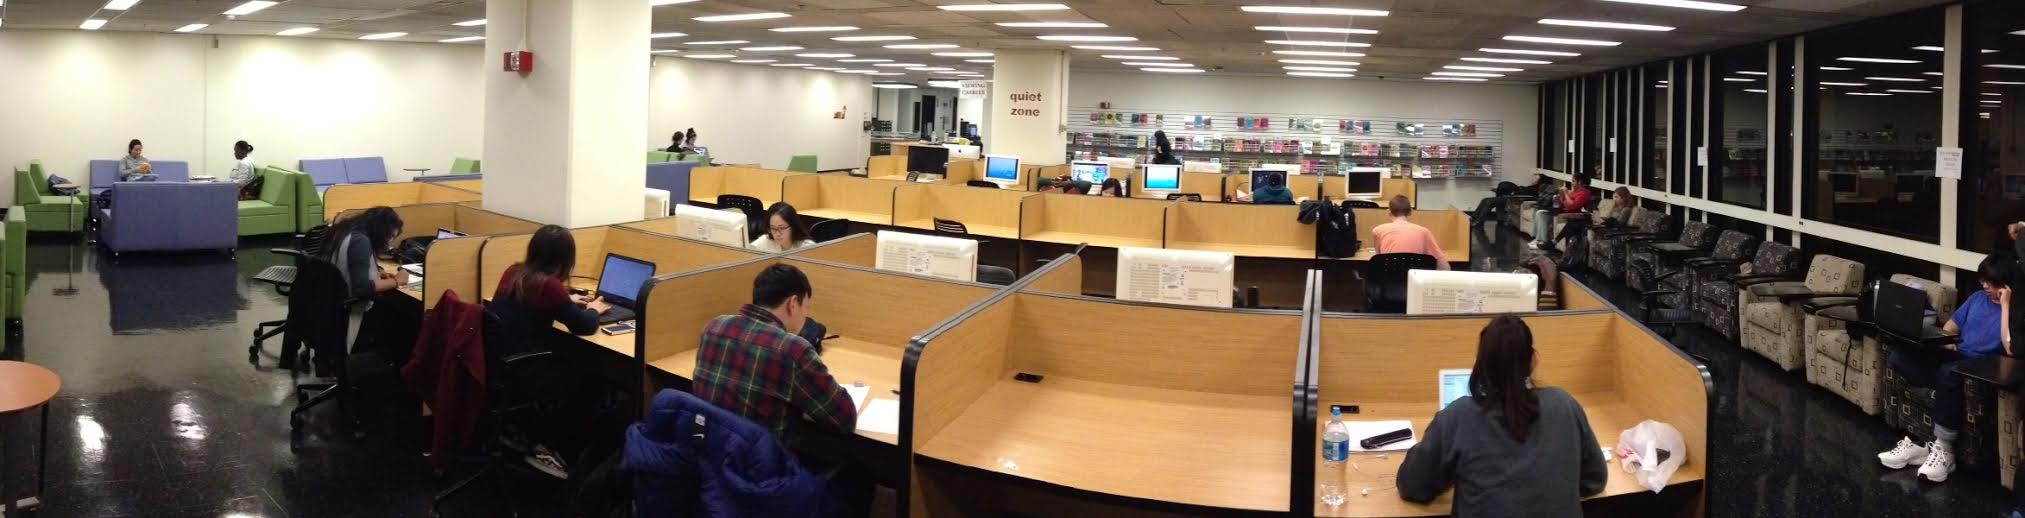 Students studying in Media Services